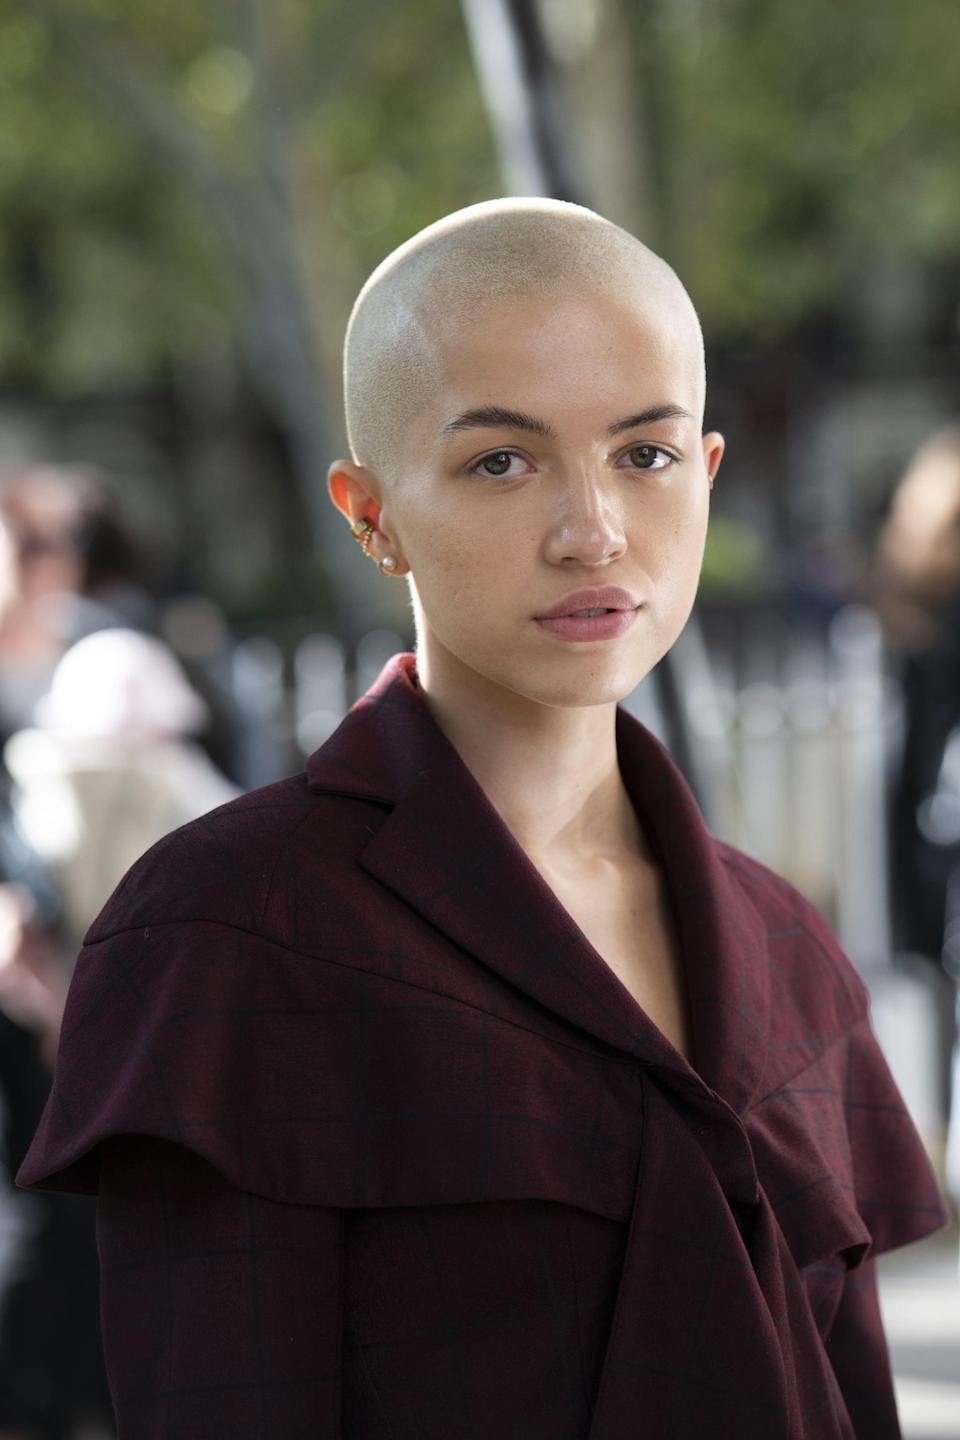 """<p>As so eloquently <a href=""""https://www.popsugar.com/beauty/bruce-willis-gives-daughter-tallulah-buzzcut-47376297"""" class=""""link rapid-noclick-resp"""" rel=""""nofollow noopener"""" target=""""_blank"""" data-ylk=""""slk:demonstrated by Tallulah Willis"""">demonstrated by Tallulah Willis</a> and <a href=""""https://www.popsugar.com/beauty/antoni-porowski-buzzcut-hairstyle-47646738"""" class=""""link rapid-noclick-resp"""" rel=""""nofollow noopener"""" target=""""_blank"""" data-ylk=""""slk:Antoni Porowski"""">Antoni Porowski</a>: <a href=""""https://www.popsugar.com/beauty/Women-Buzz-Cut-Hairstyles-44242074"""" class=""""link rapid-noclick-resp"""" rel=""""nofollow noopener"""" target=""""_blank"""" data-ylk=""""slk:buzz cuts"""">buzz cuts</a> can be damn <em>cool</em> (and are very on-trend right now, according to <a href=""""https://www.instagram.com/larryjarahsims/?hl=en"""" class=""""link rapid-noclick-resp"""" rel=""""nofollow noopener"""" target=""""_blank"""" data-ylk=""""slk:Larry Sims"""">Larry Sims</a>, celebrity hairstylist and co-founder of Flawless by <a class=""""link rapid-noclick-resp"""" href=""""https://www.popsugar.com/Gabrielle-Union"""" rel=""""nofollow noopener"""" target=""""_blank"""" data-ylk=""""slk:Gabrielle Union"""">Gabrielle Union</a>). This is characterized by hair that's been completely buzzed off, or left with at least an inch of hair from the scalp.</p>"""